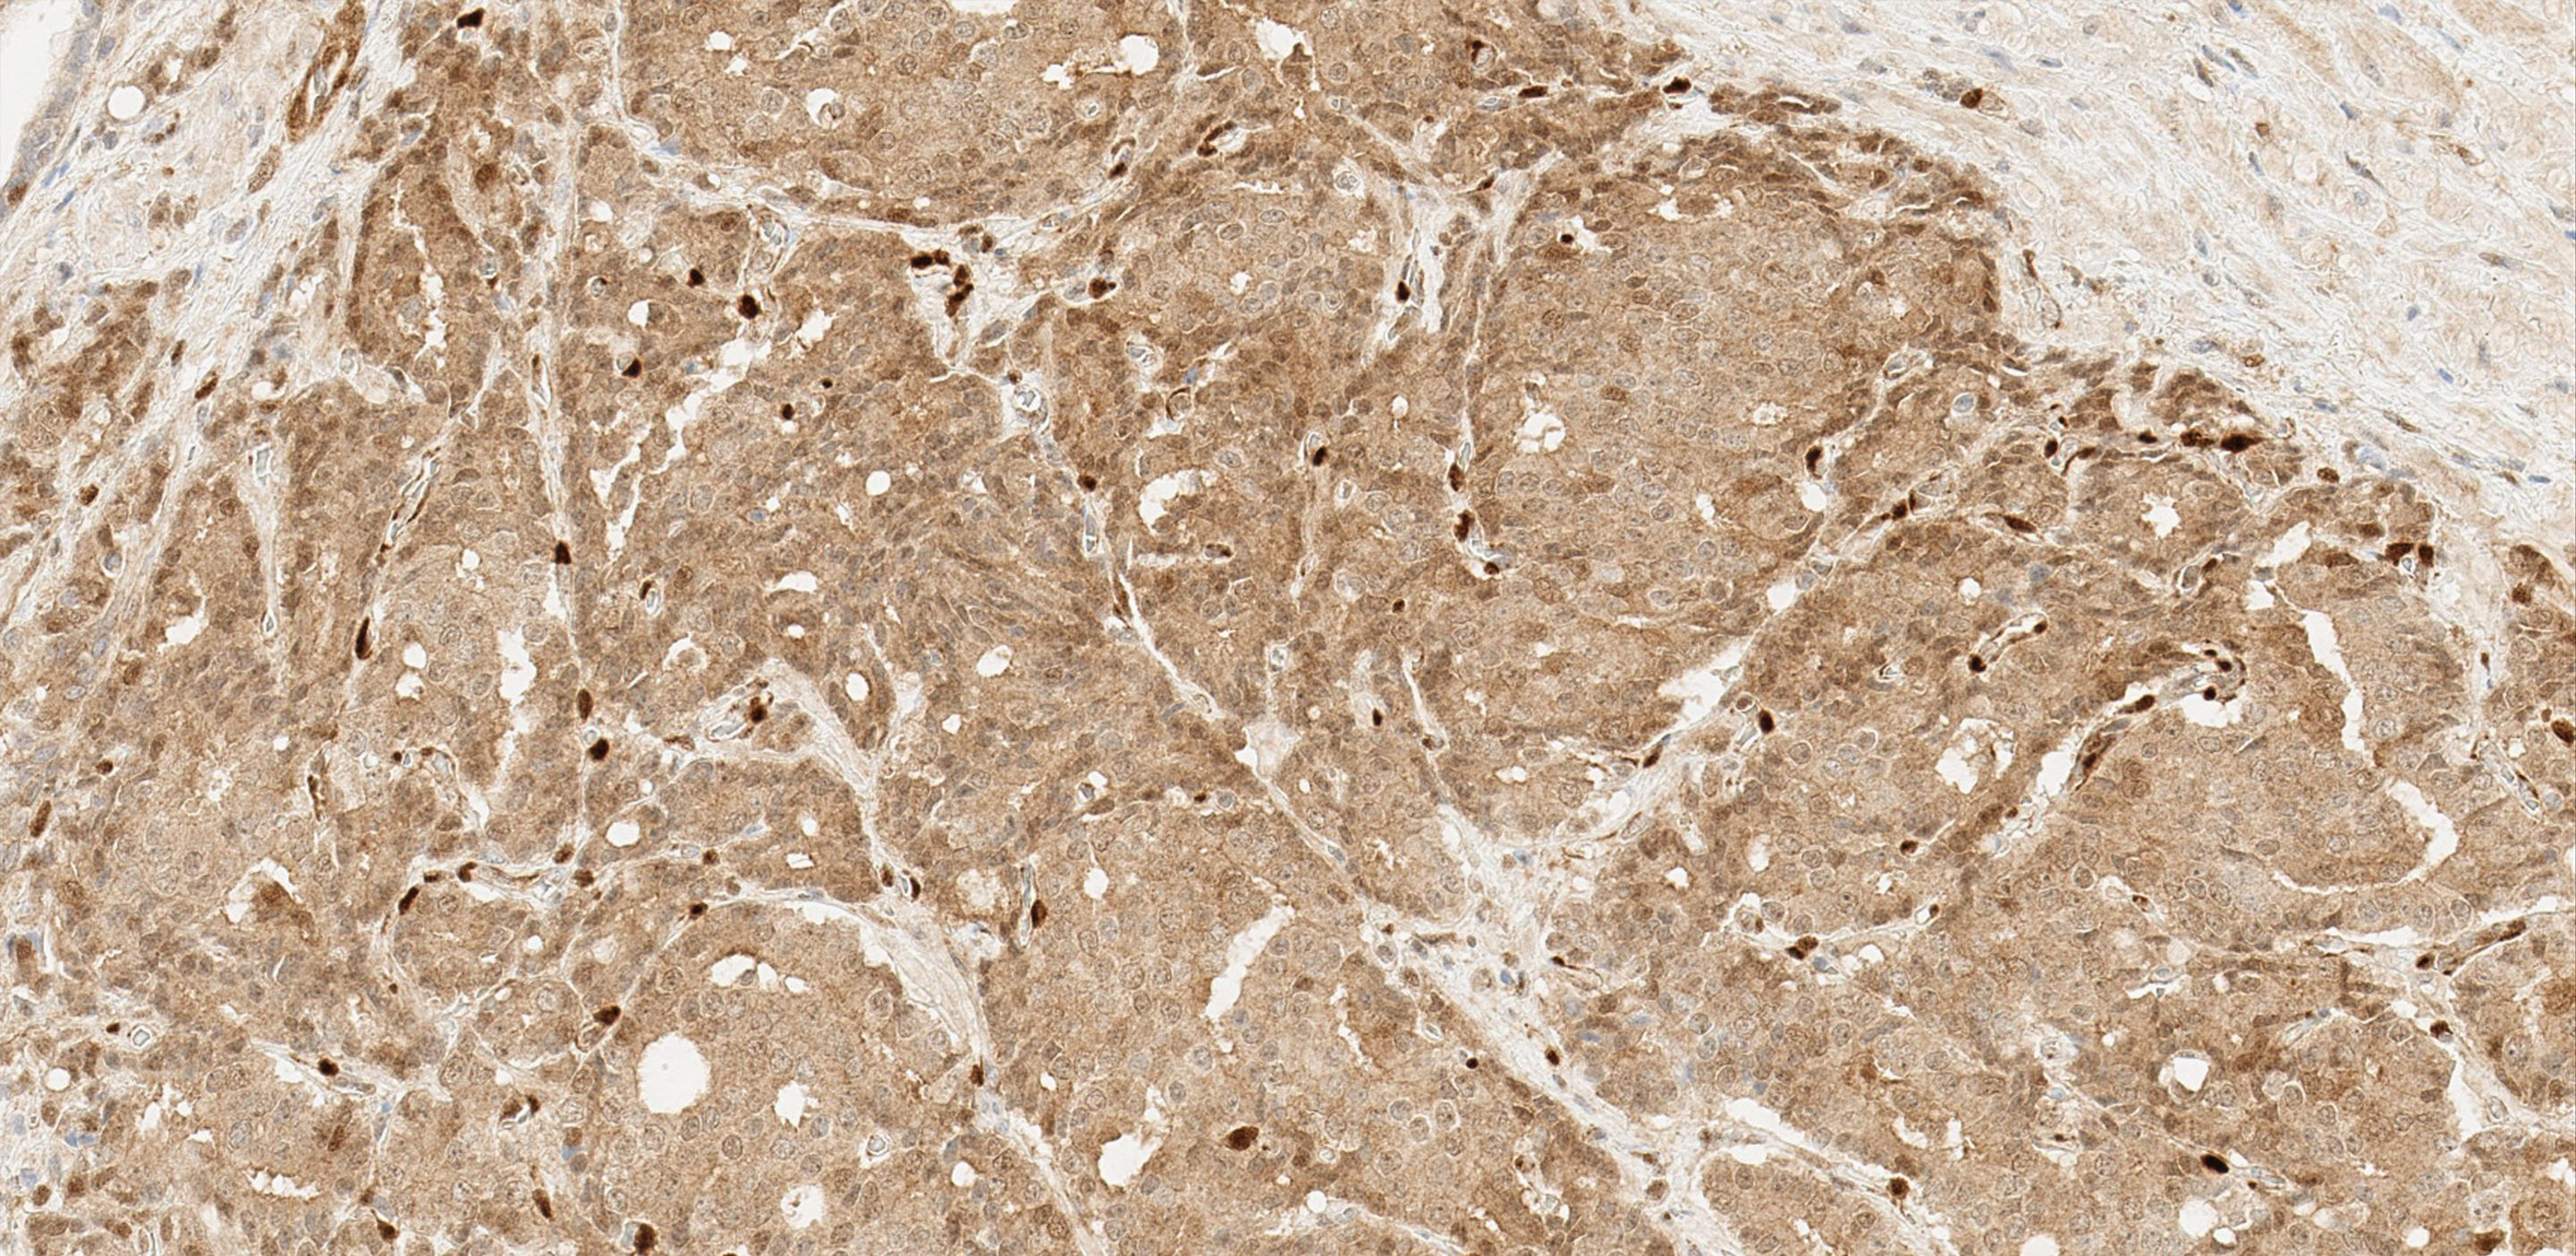 immunohistochemical staining with Basal Cell Cocktail 34ßE12 + p63